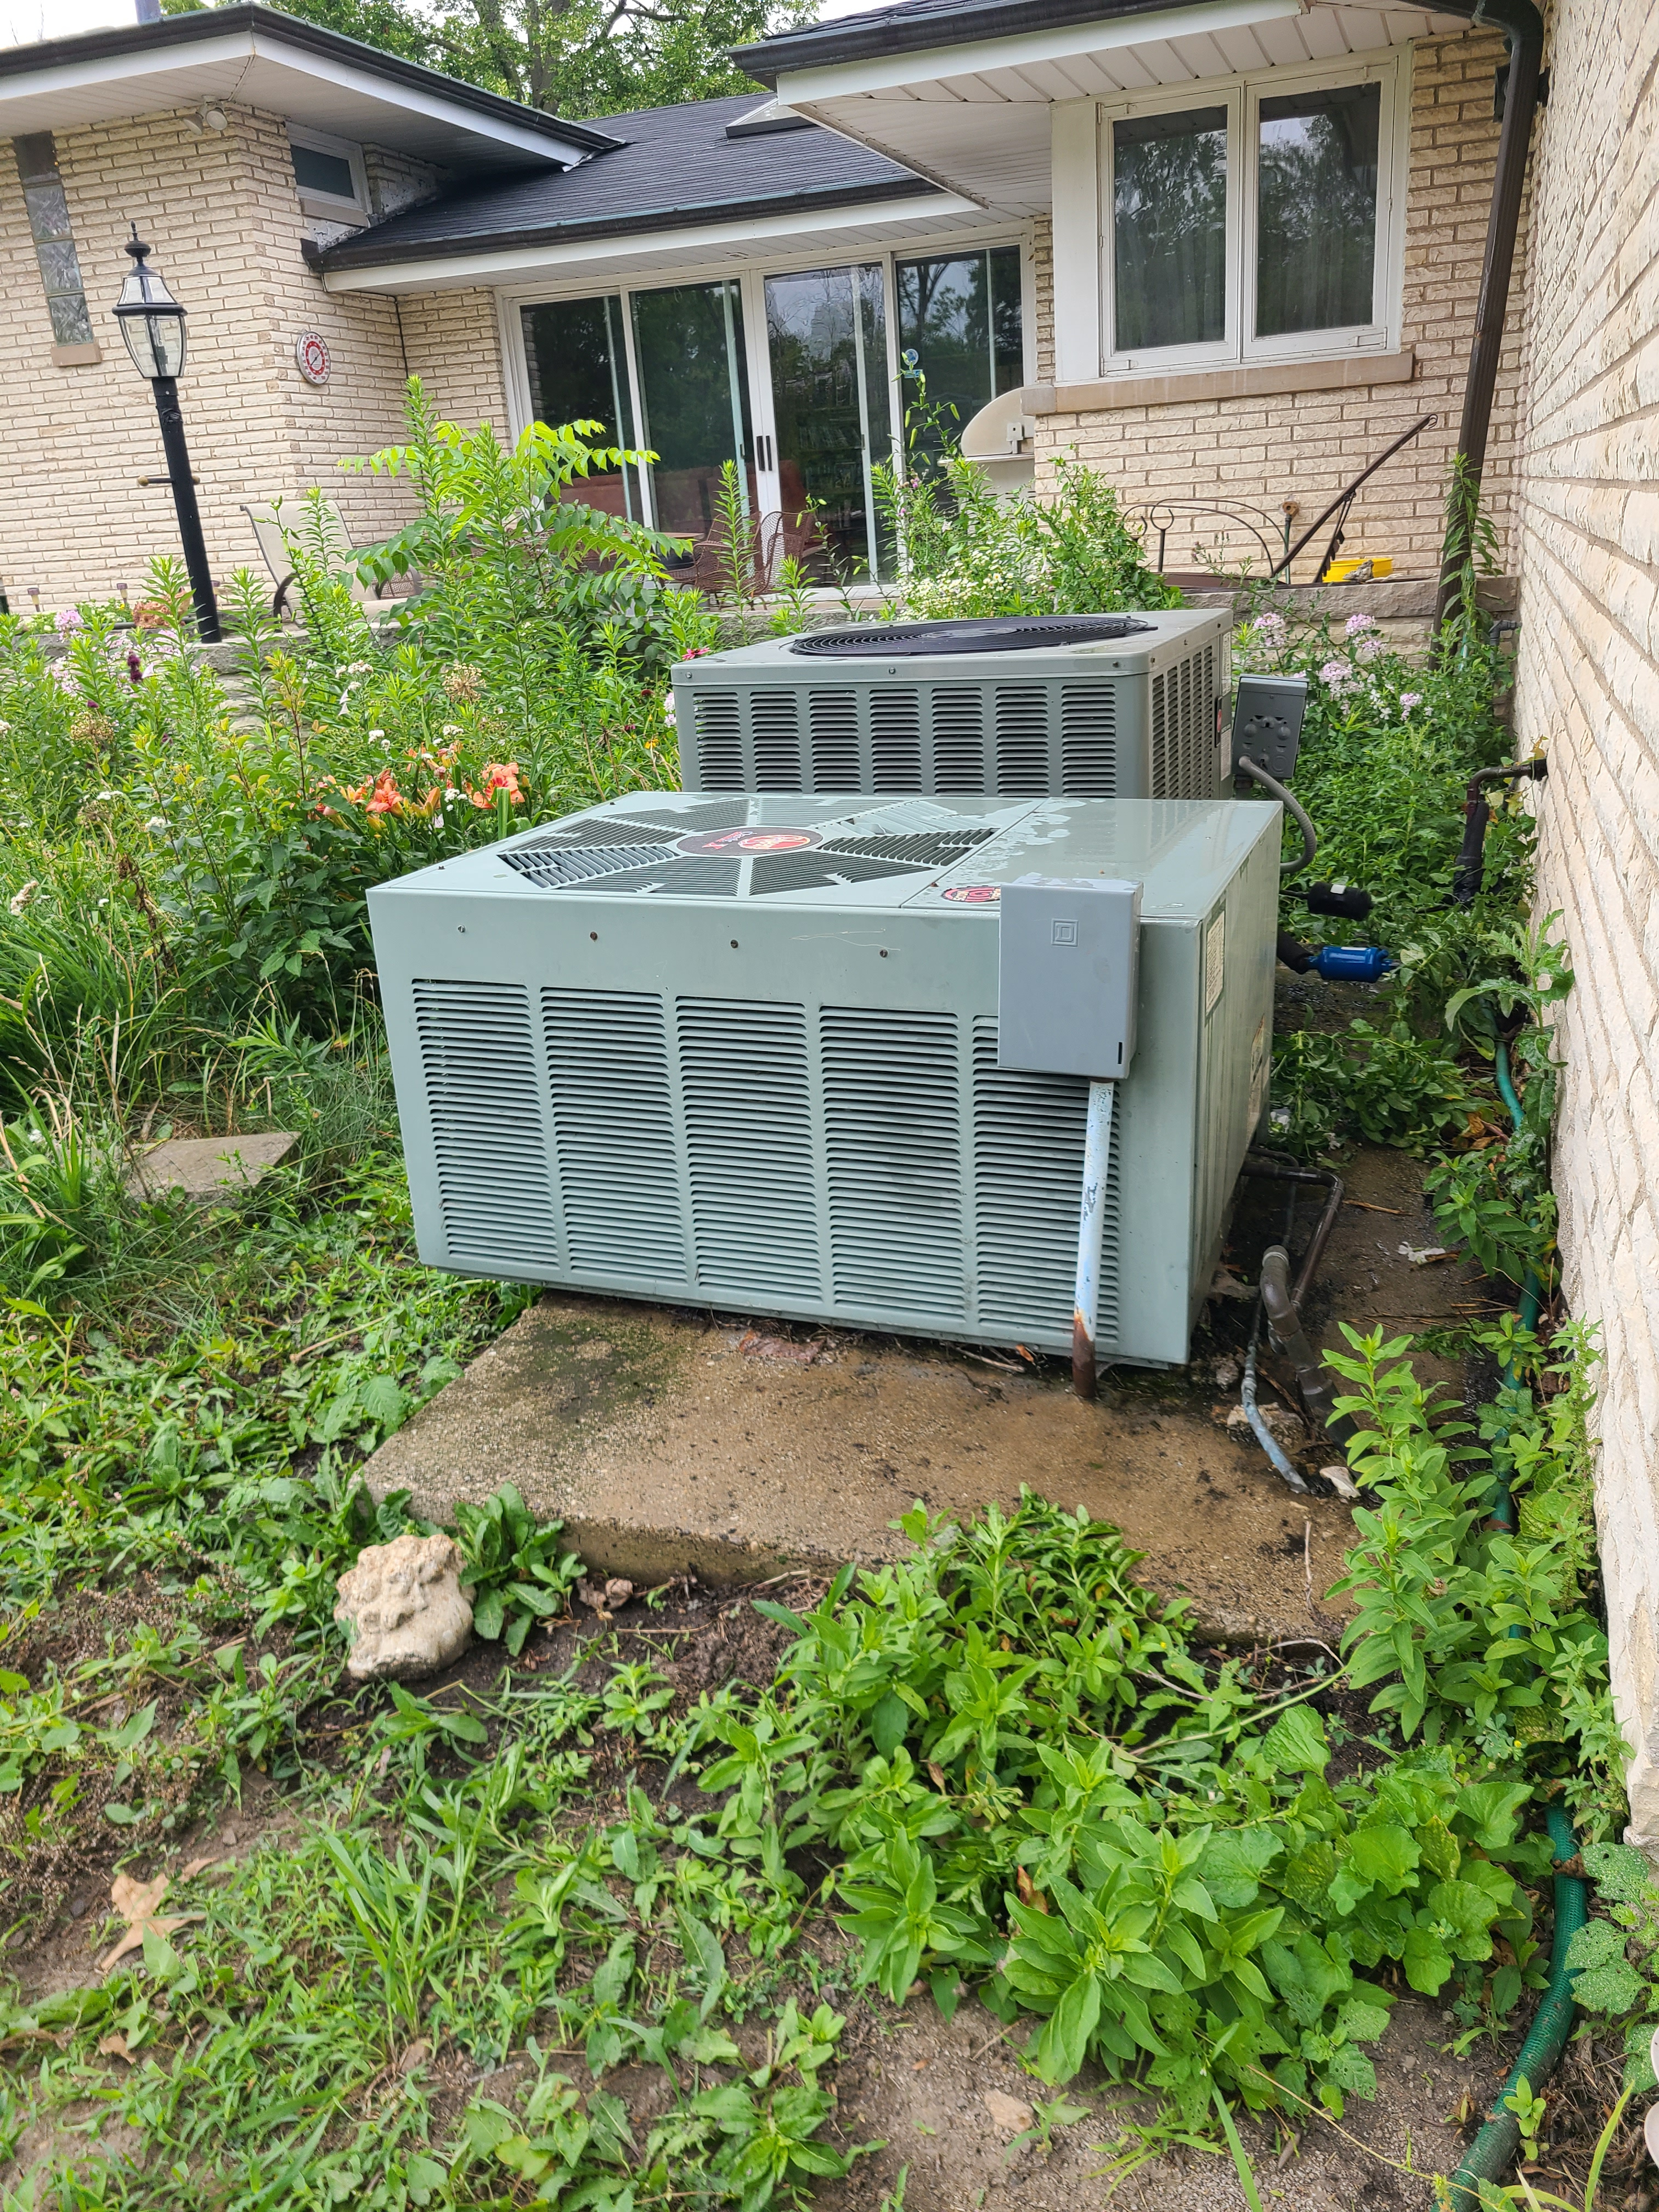 2 RHEEM r22 systems cleaned tested and ready for summer operation